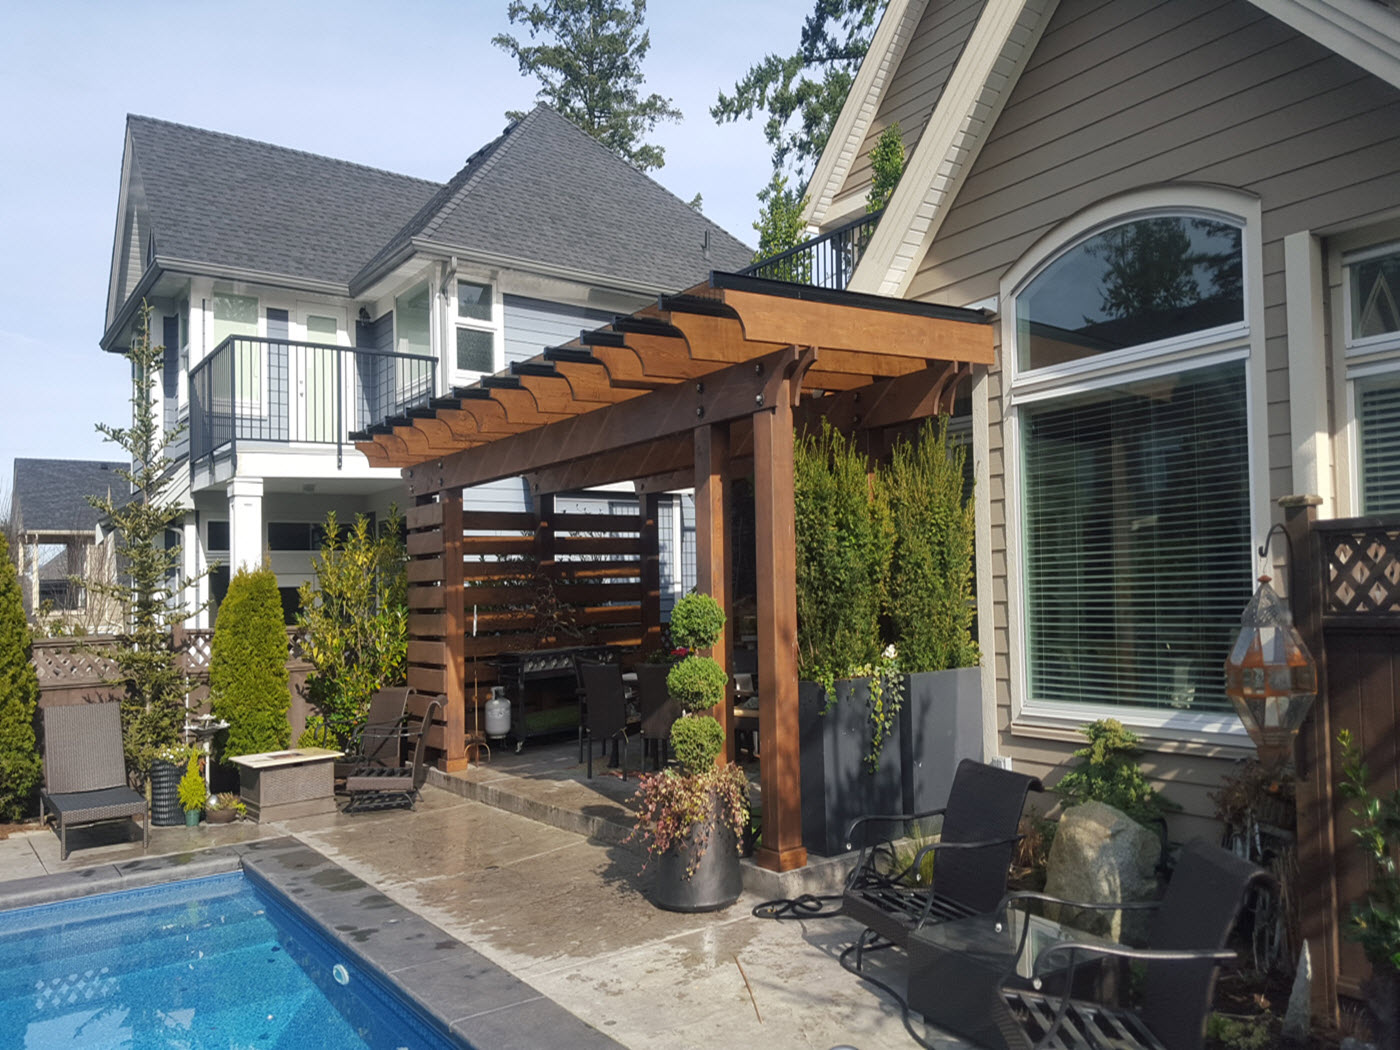 canadian outdoors cover residential the expand patio niagara en vancouver home your hamilton and toronto into covers ca slide lumon chilliwack